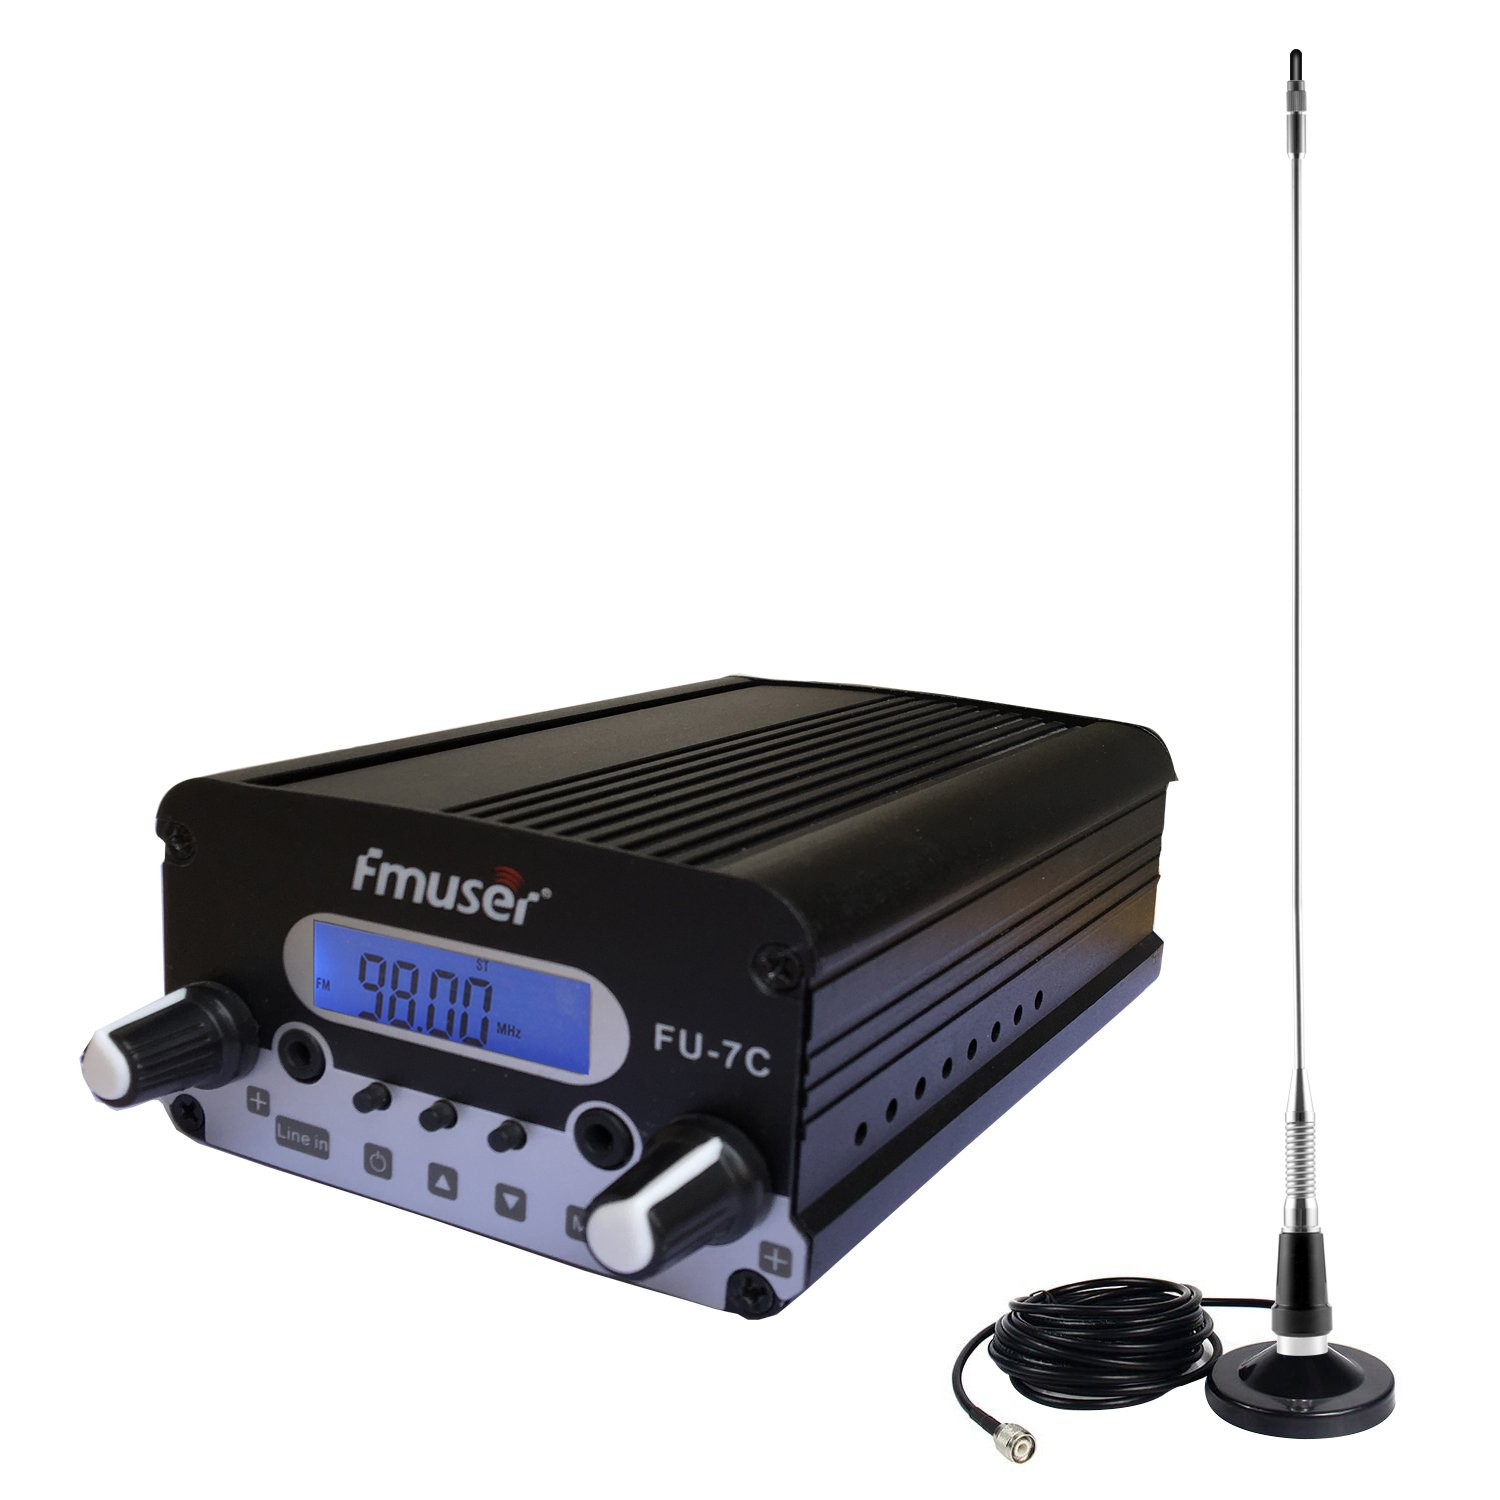 FMUSER FU-7C 1.5W / 7W Holiday Light Show FM Transmitter + Magnetic Mount Antenna + Power Adapter, FM Transmitter KIT for House, Campus, Church, Camping, Christmas Yard Displays, Outdoor Movie Nights